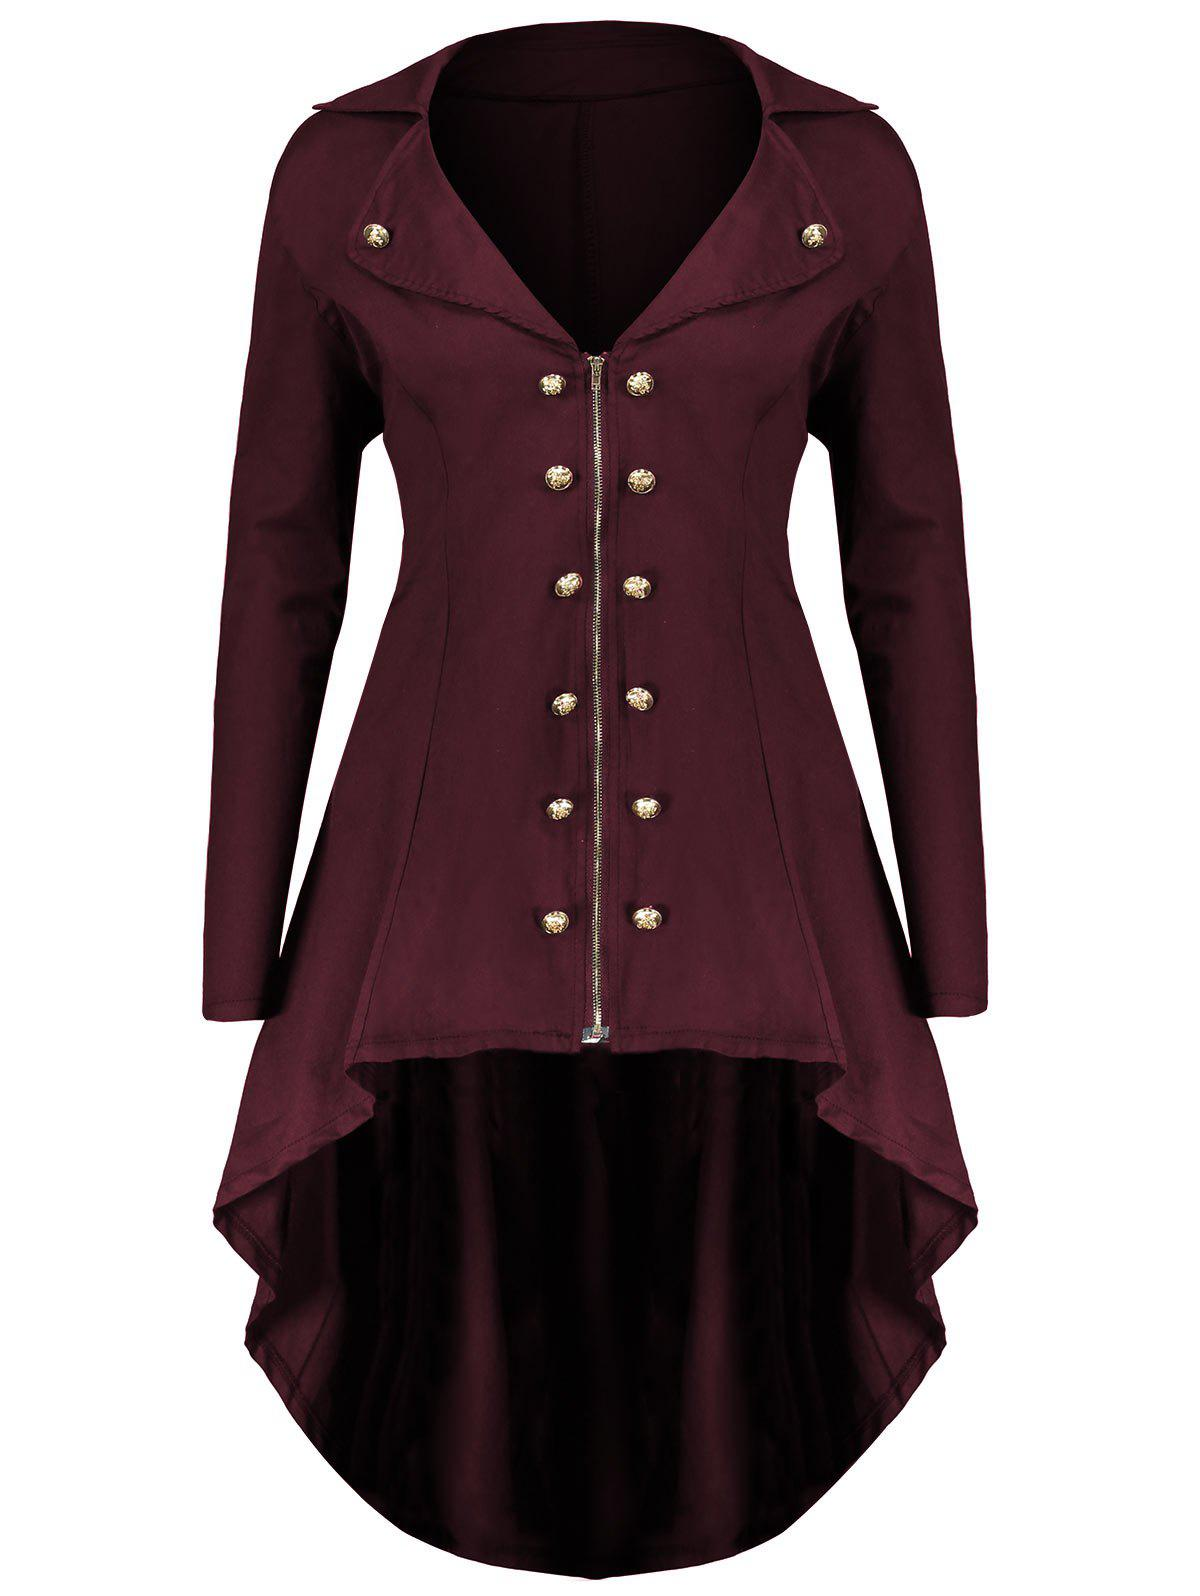 Lapel Double Breast Plus Size High Low CoatWOMEN<br><br>Size: 4XL; Color: WINE RED; Clothes Type: Others; Material: Polyester,Spandex; Type: Asymmetric Length; Shirt Length: Long; Sleeve Length: Full; Collar: Lapel; Pattern Type: Solid; Embellishment: Button,Zippers; Style: Fashion; Season: Fall,Winter; Weight: 0.5200kg; Package Contents: 1 x Coat;